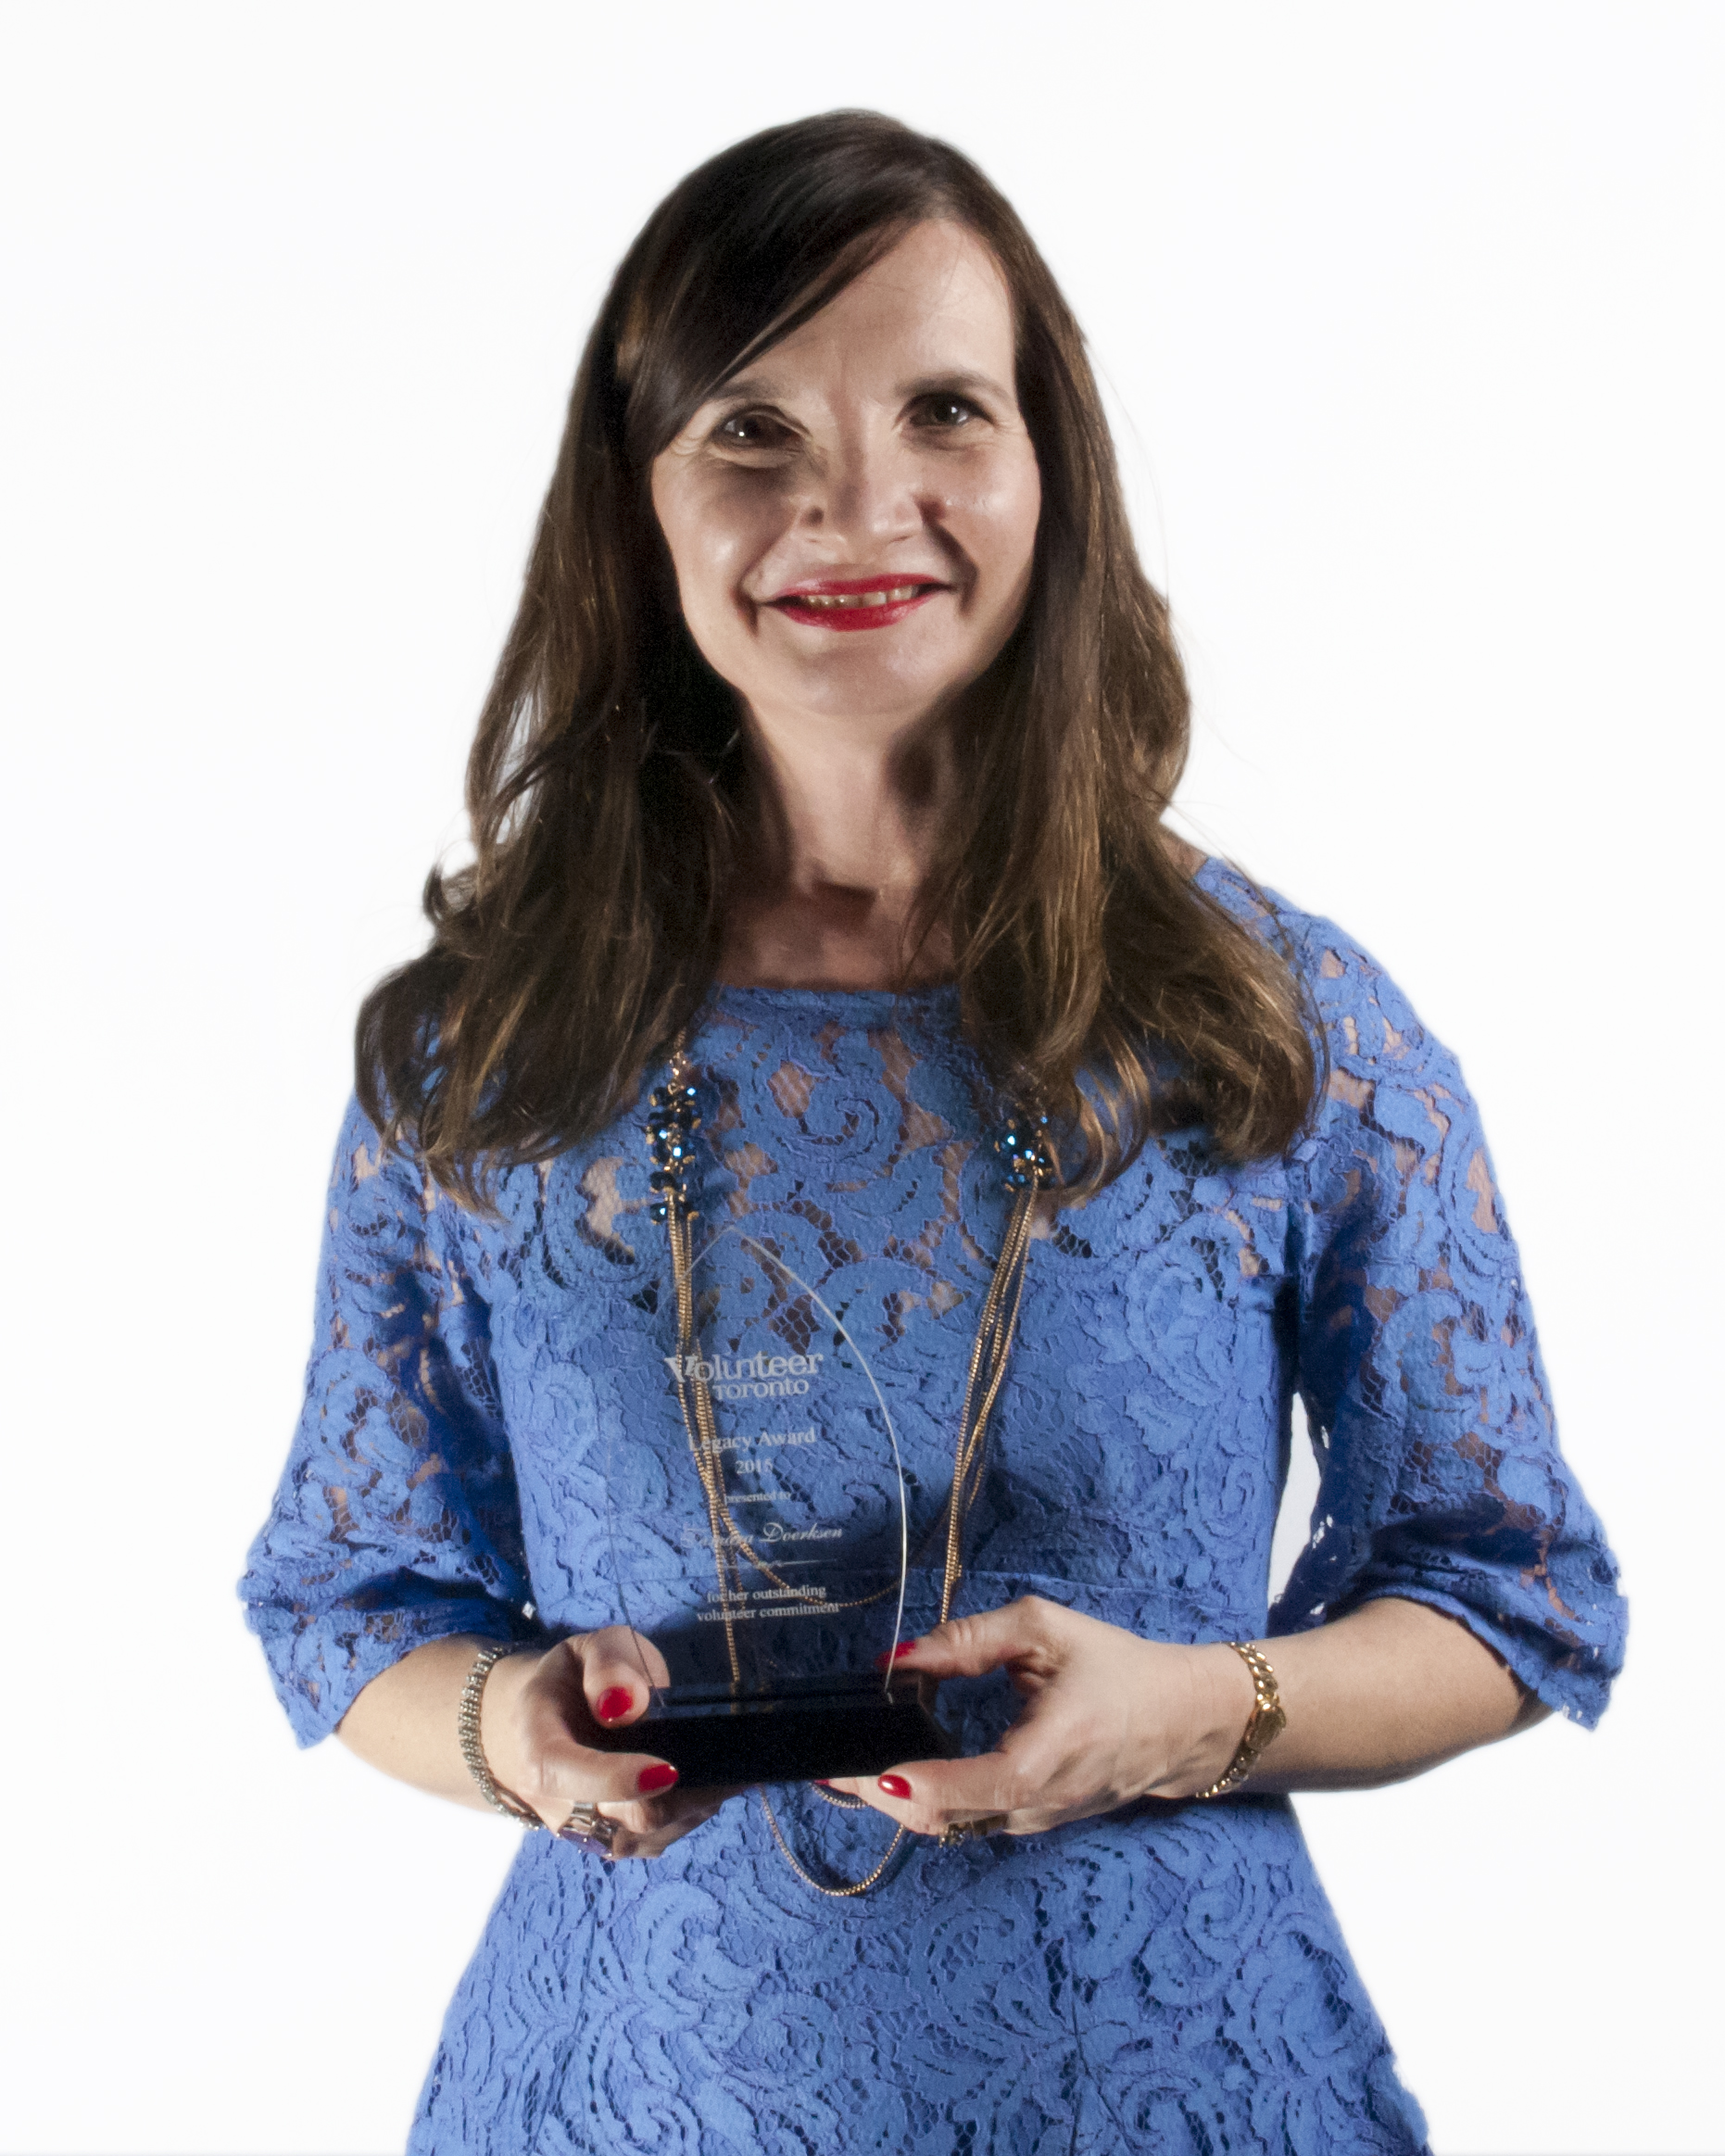 Photo of Tamara Doerksen with Award